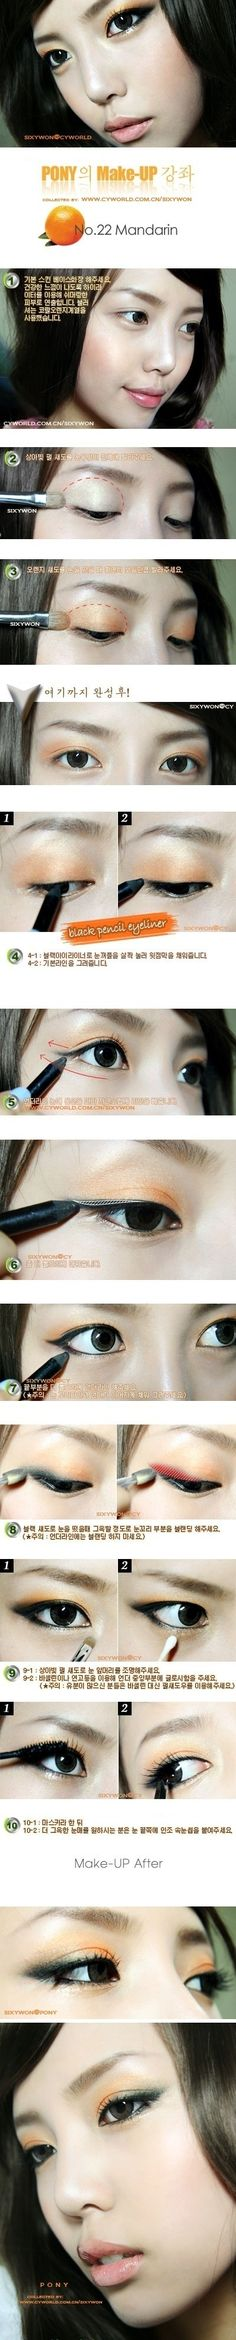 Orange eyeshadow can look amazing when blended with a dark color on the outer corners.